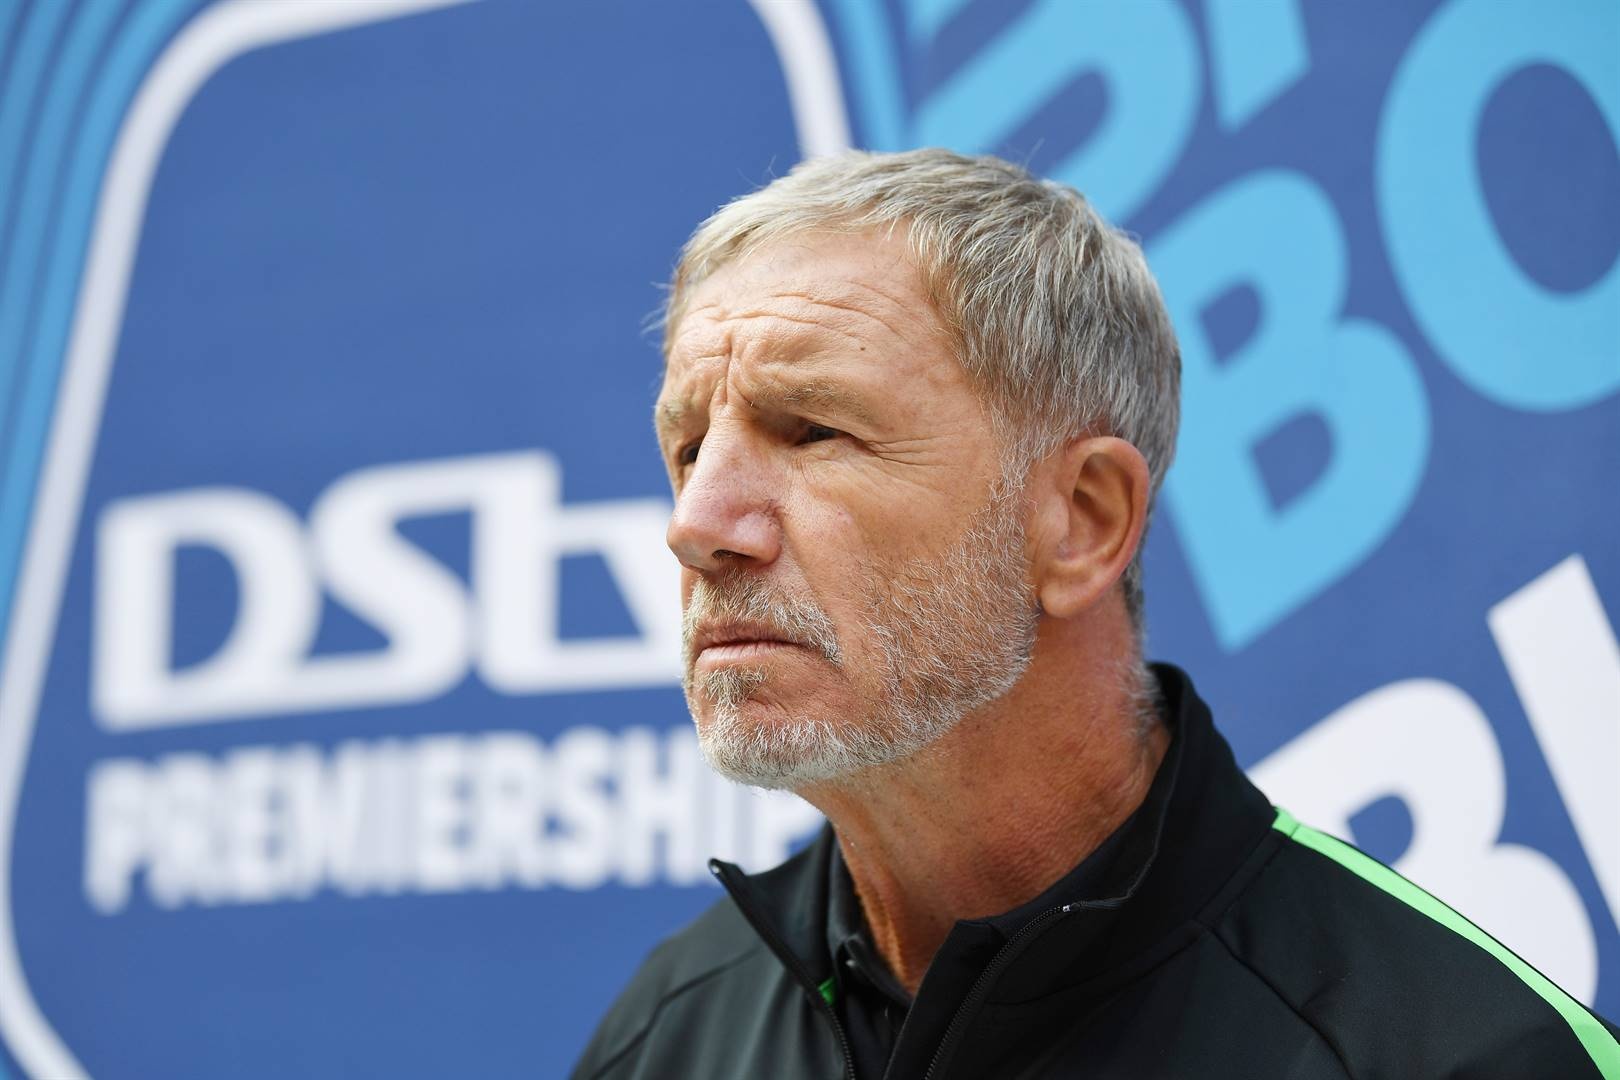 Kaizer Chiefs coach Stuart Baxter is hoping to replicate the success he enjoyed in his first spell with Amakhosi. Photo: Lefty Shivambu/Gallo Images